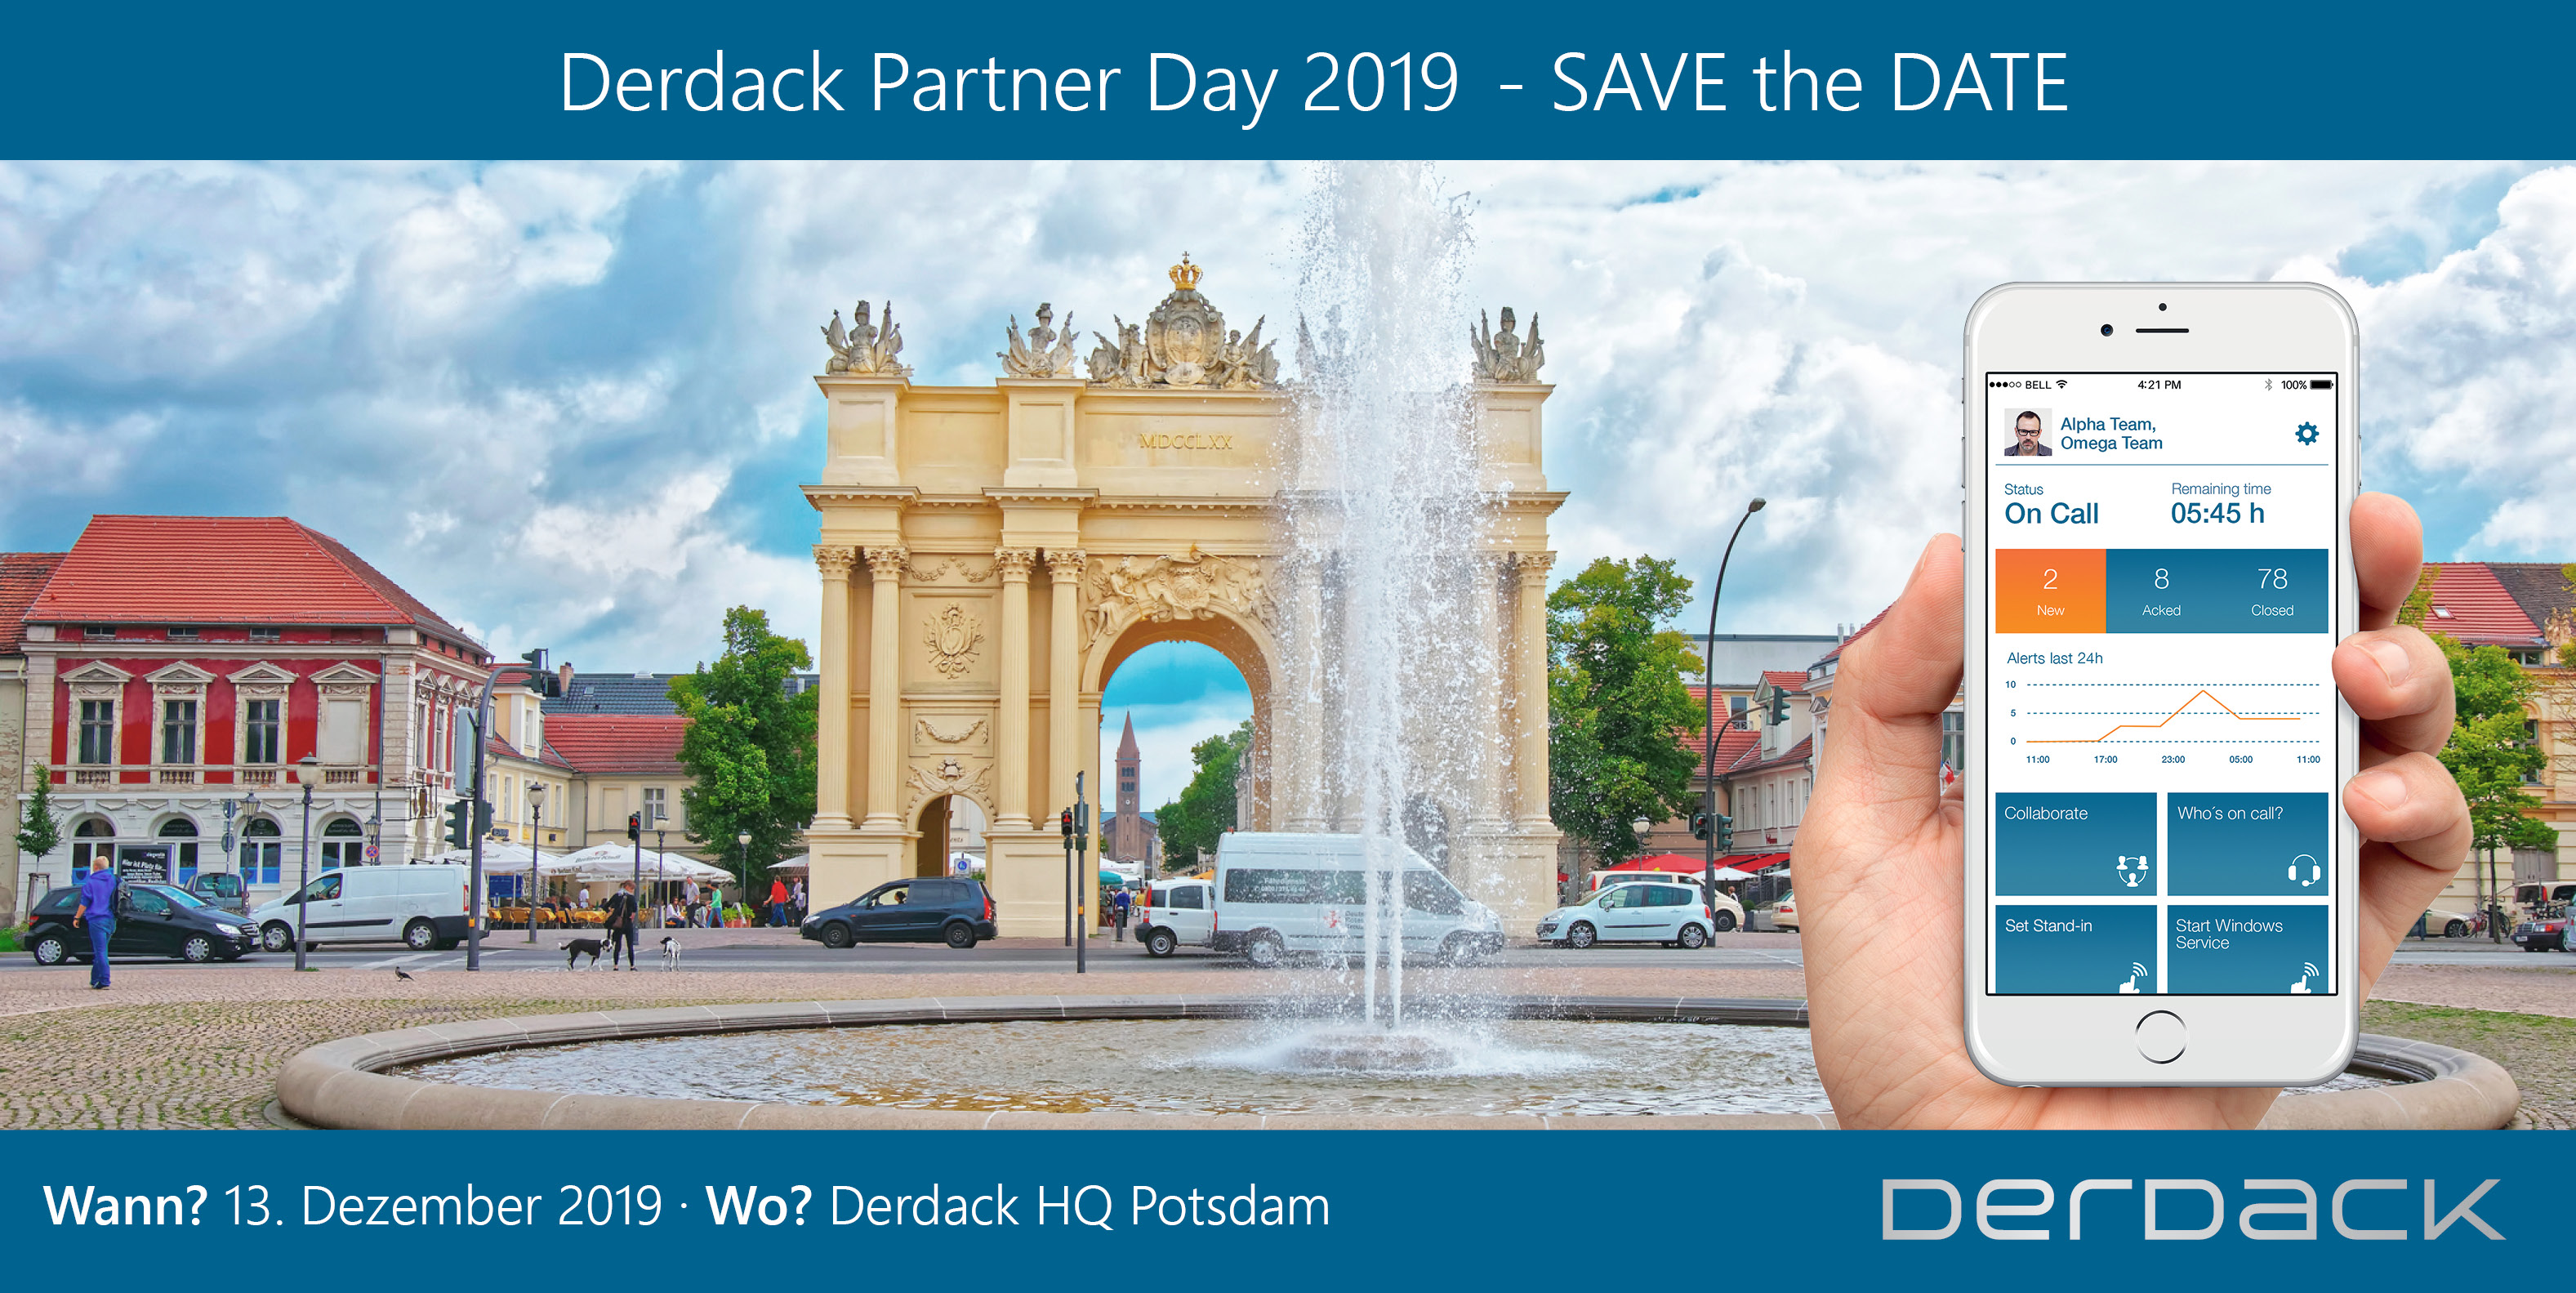 Derdack Partner Day 2019